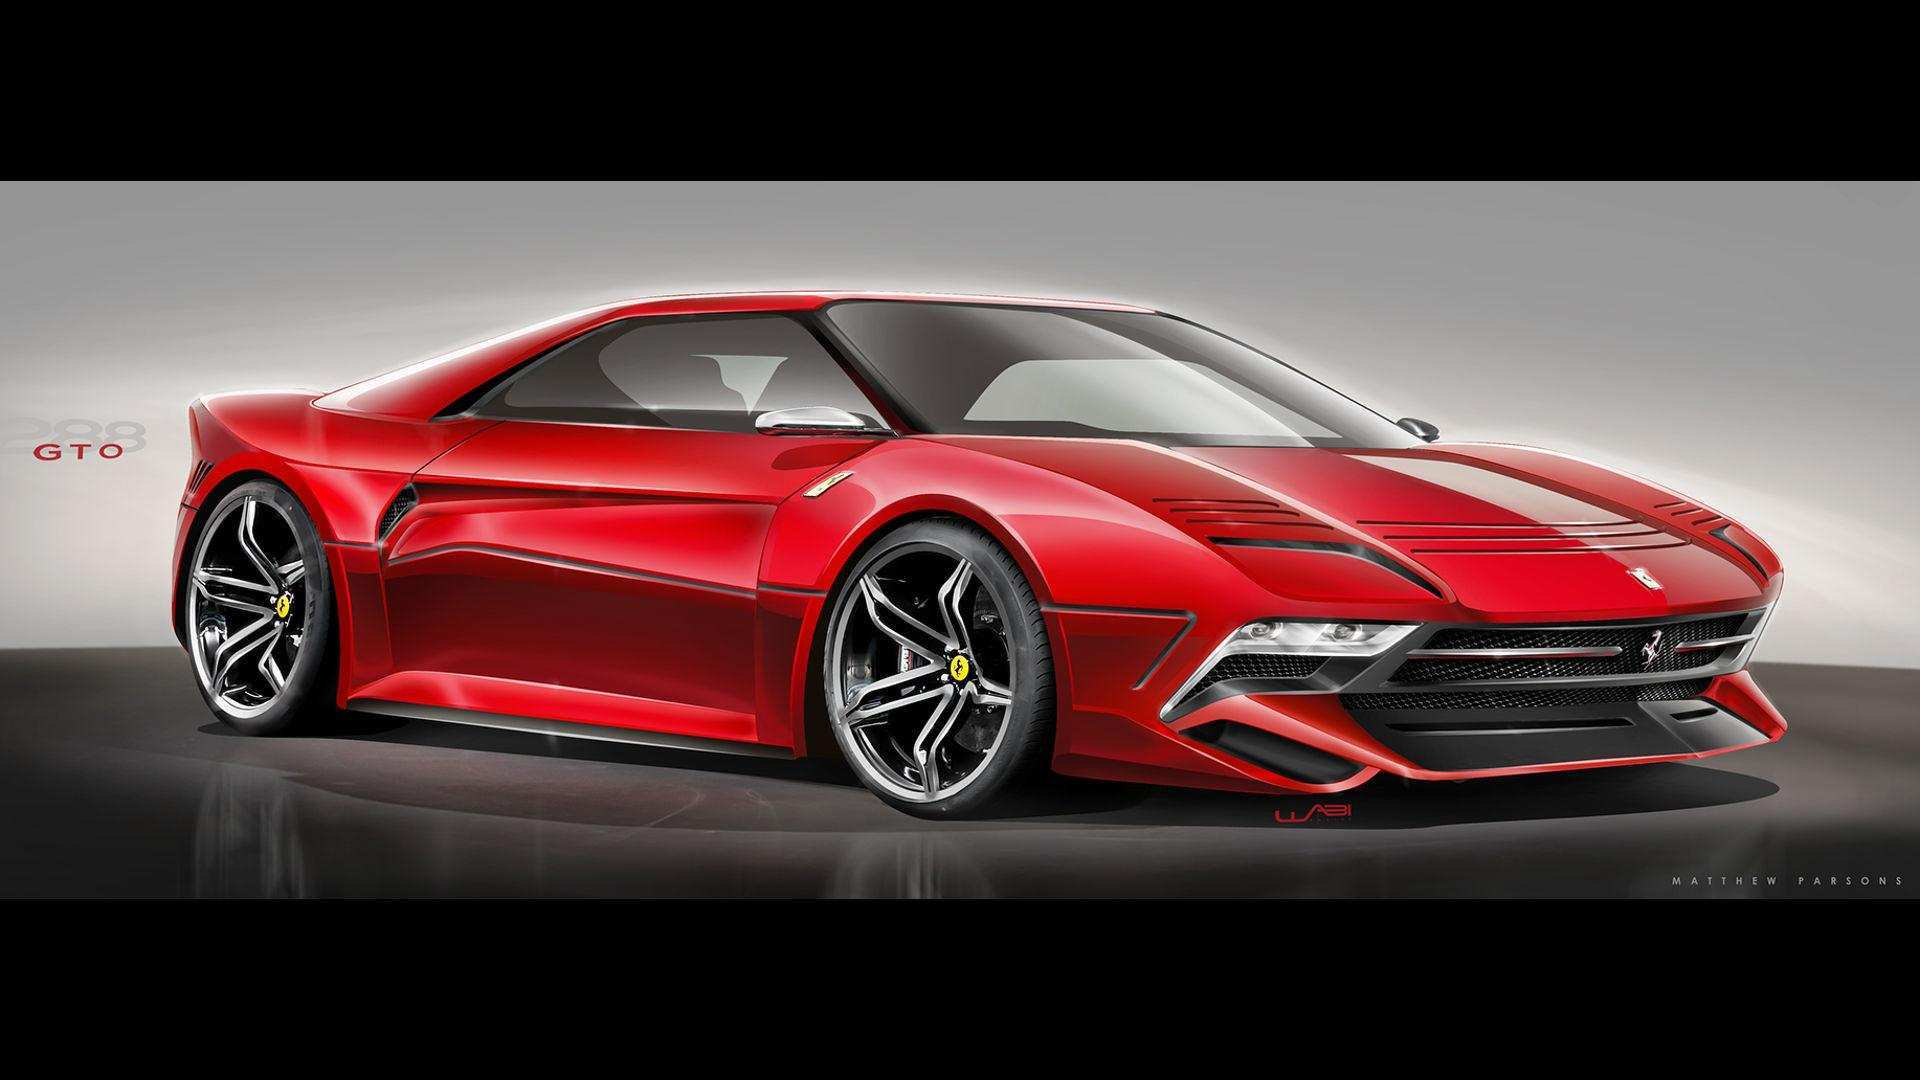 82 New Ferrari 2020 Gto Price and Review for Ferrari 2020 Gto